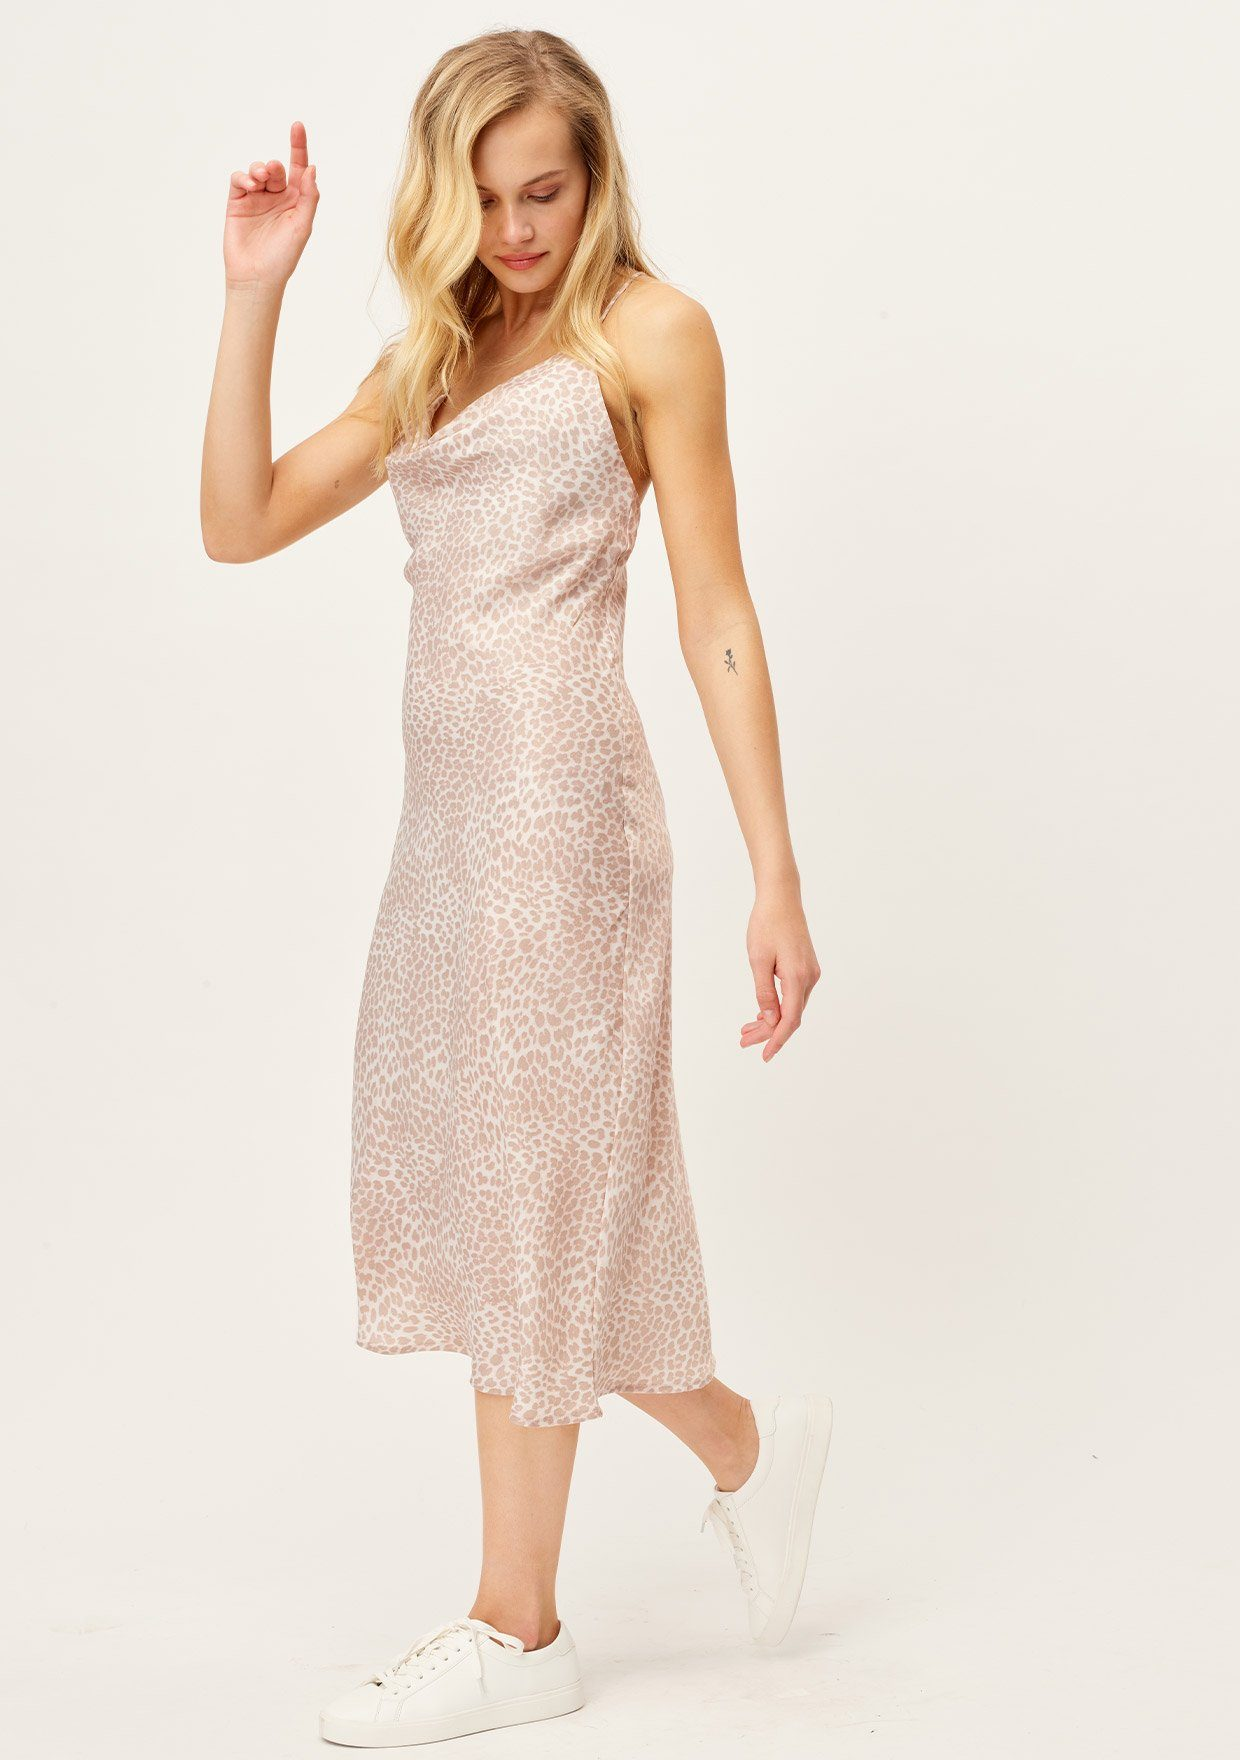 [Color: Nude/Sand] Lovestitch sexy cowl neck silky leopard print pink midi dress